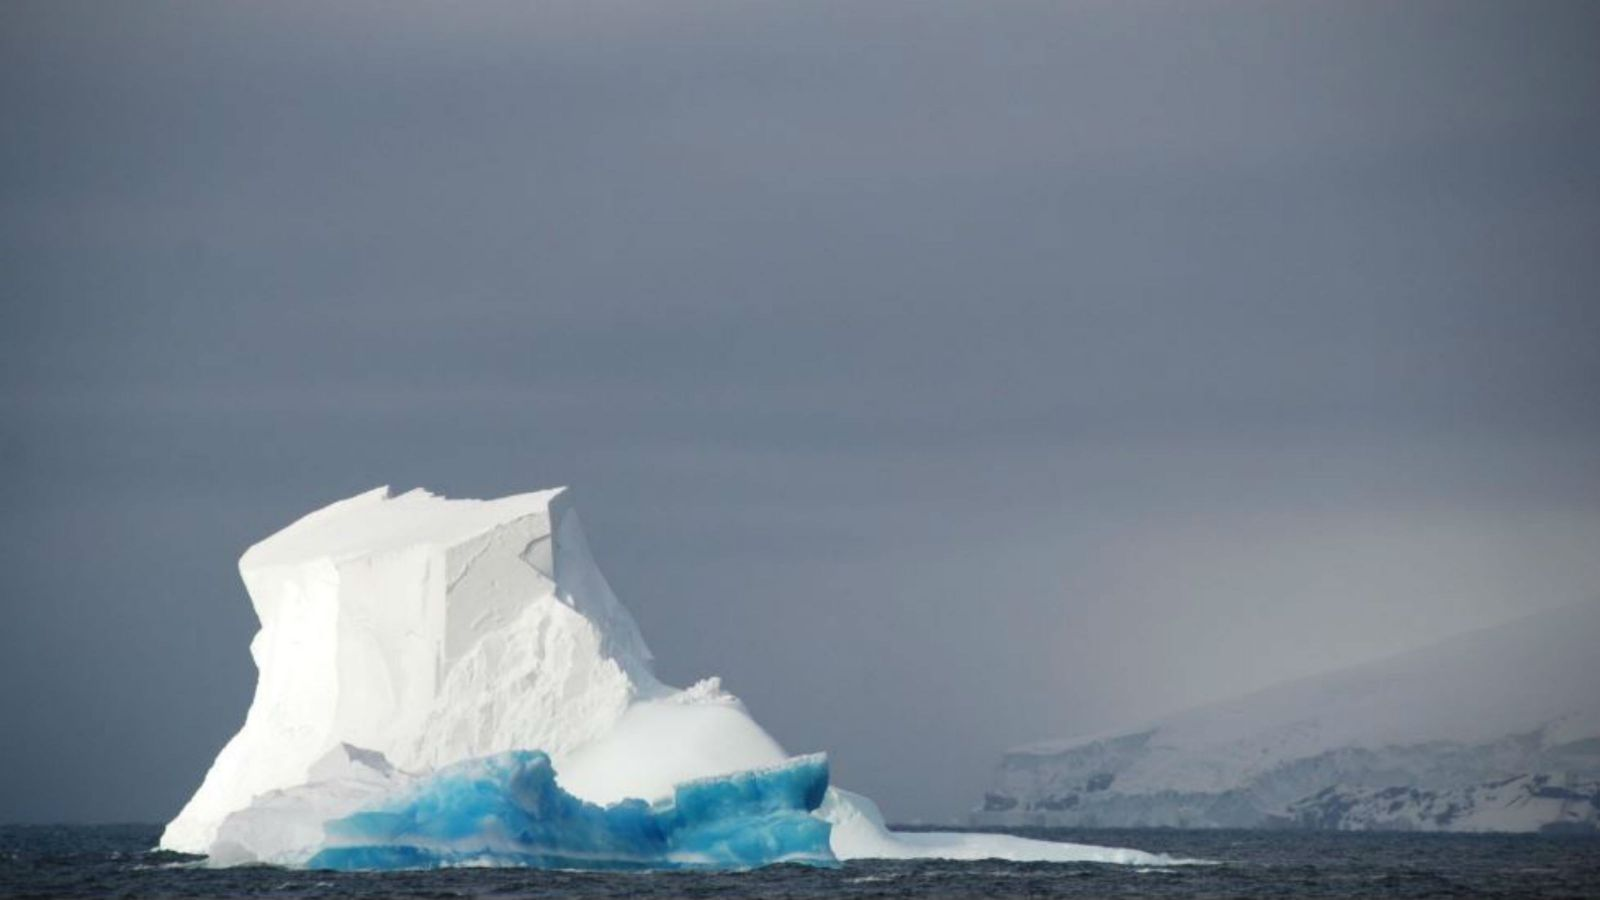 A iceberg from the East Antarctic Ice Sheet. Photo by Dr Christina Riesselman.